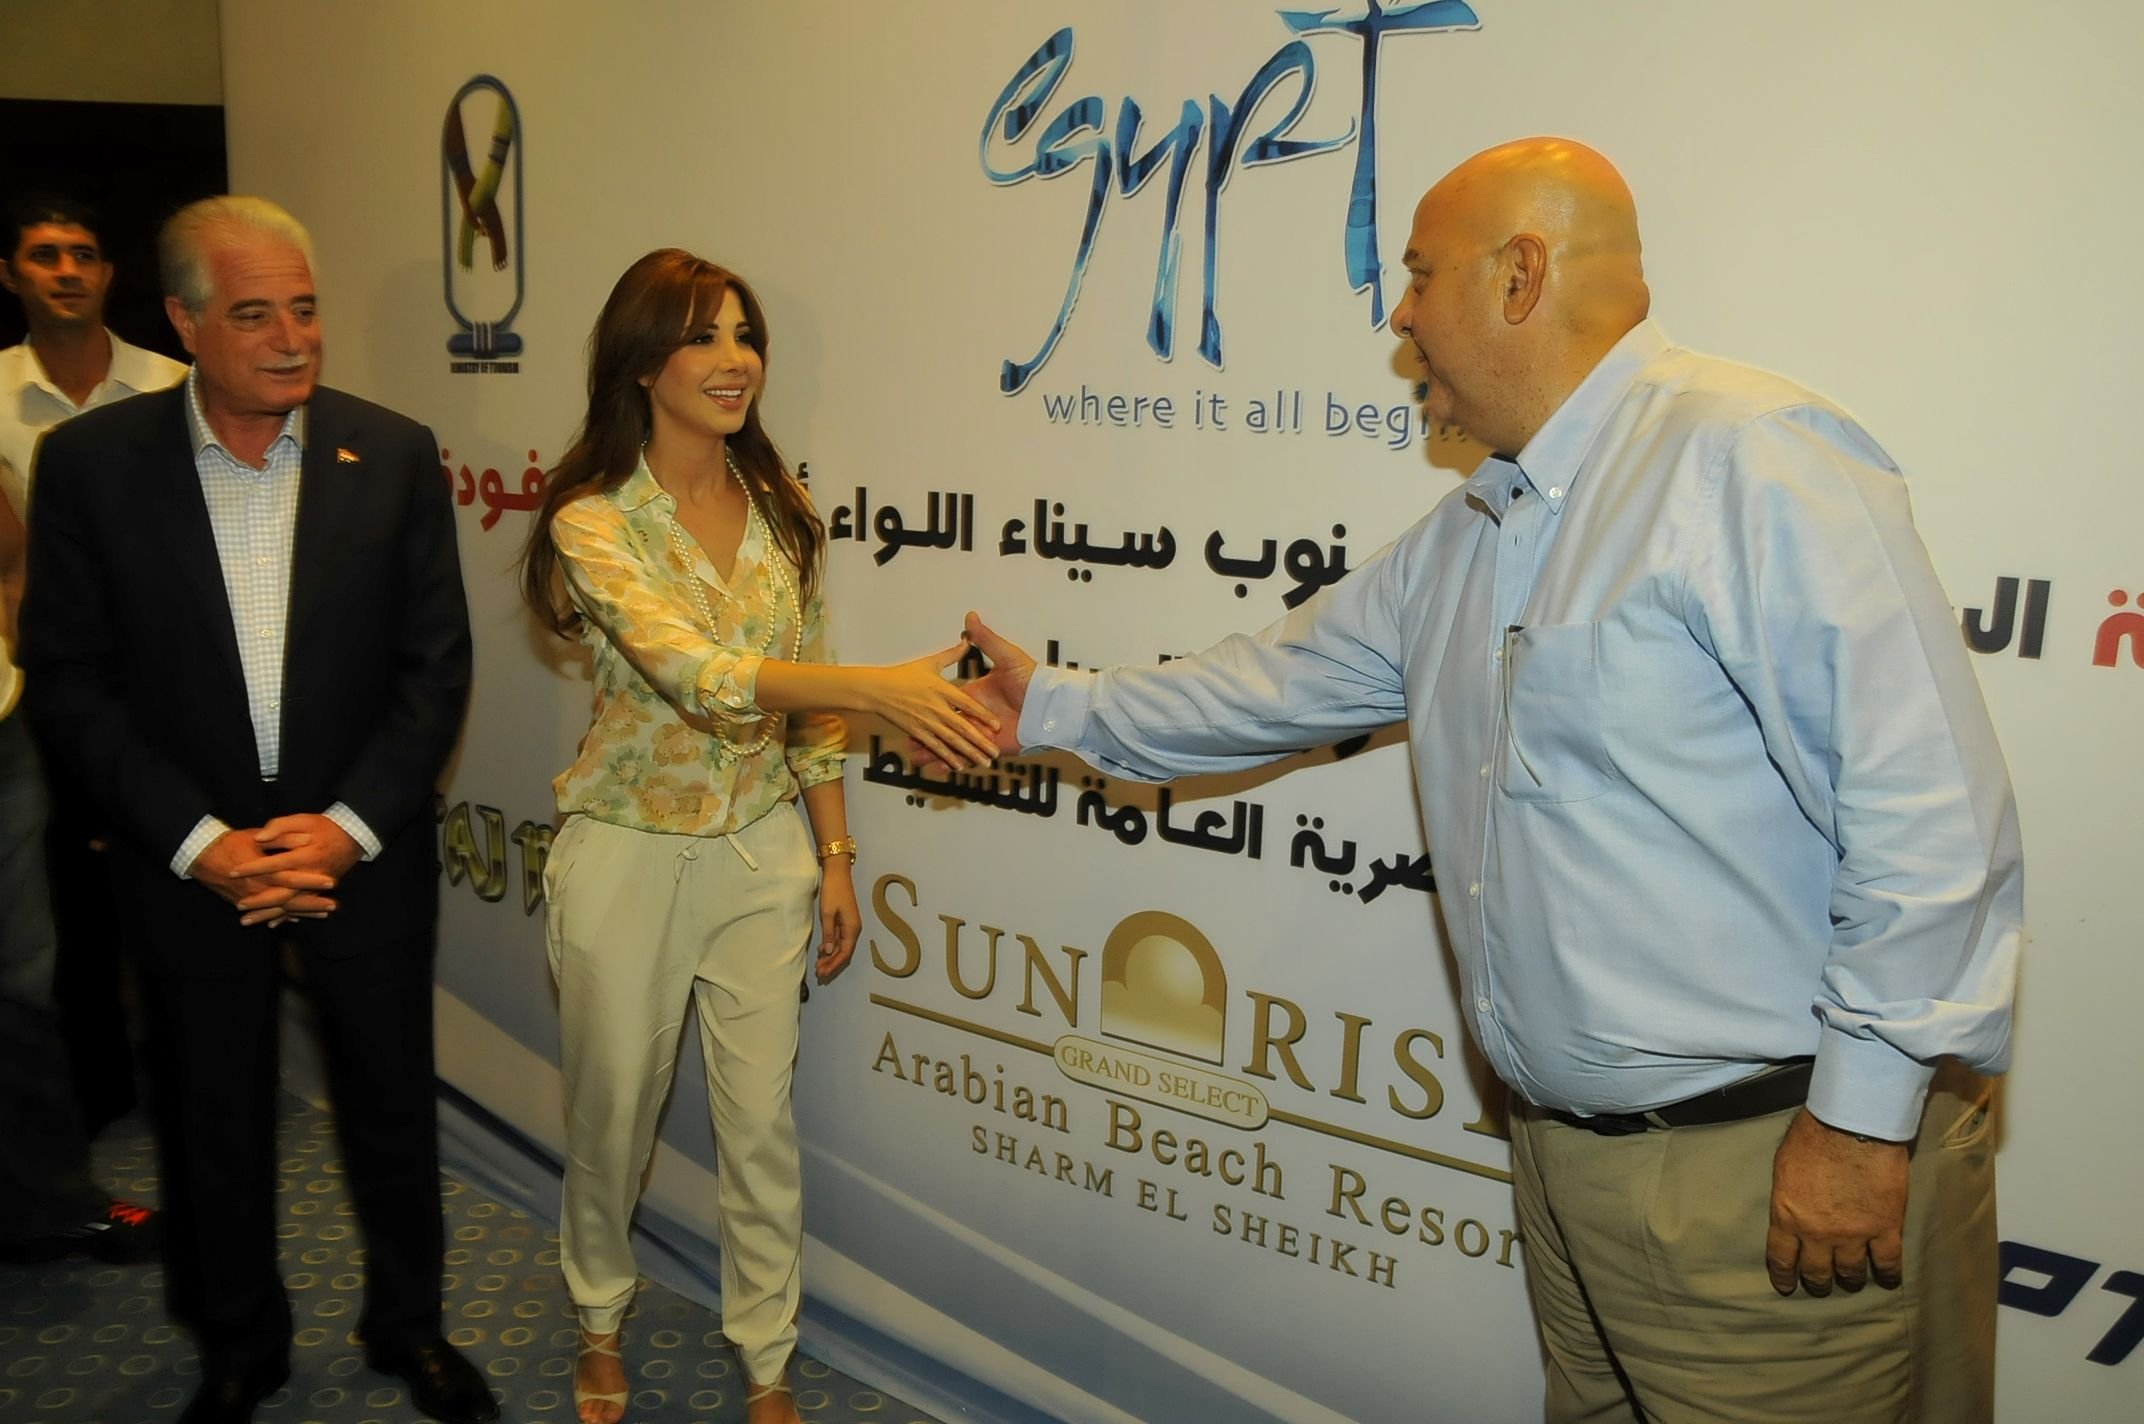 Press Conference With Nancy Ajram At The Sunrise Grand Select Arabian Beach Resort Beach Resorts Beach Nancy Ajram